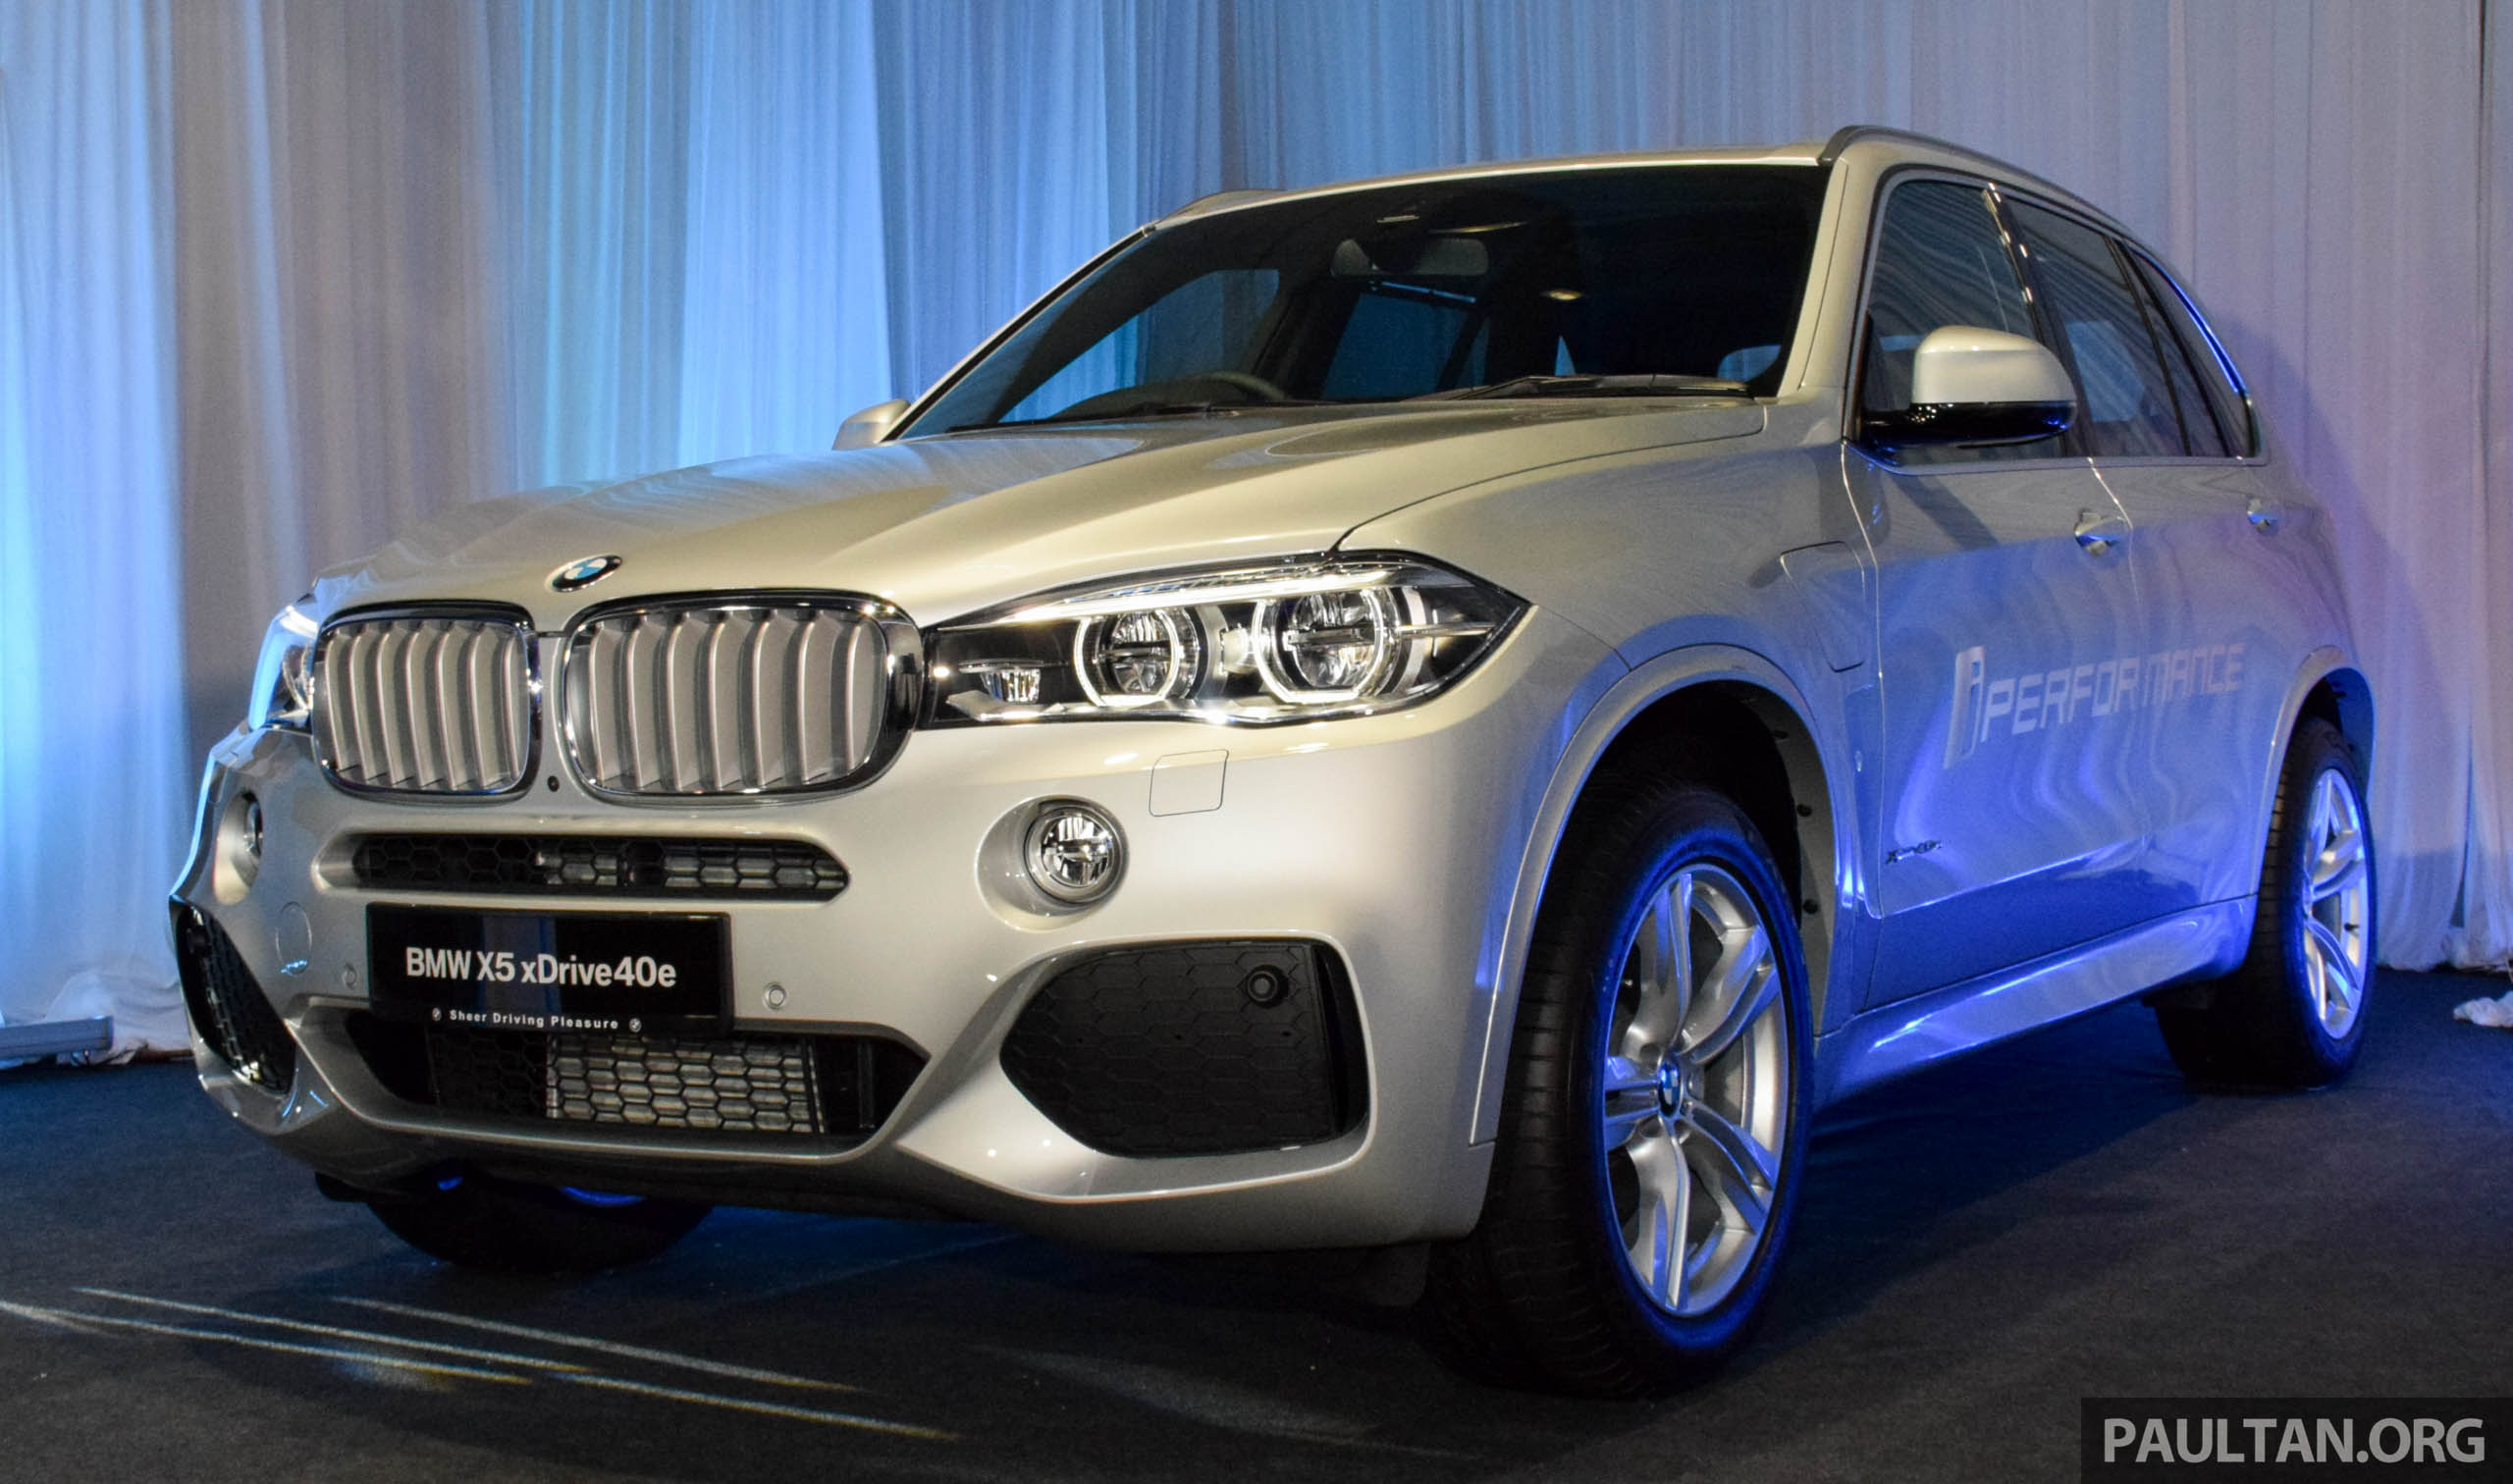 f15 bmw x5 xdrive40e m sport plug in hybrid suv launched in malaysia rm388 800 otr w o insurance. Black Bedroom Furniture Sets. Home Design Ideas